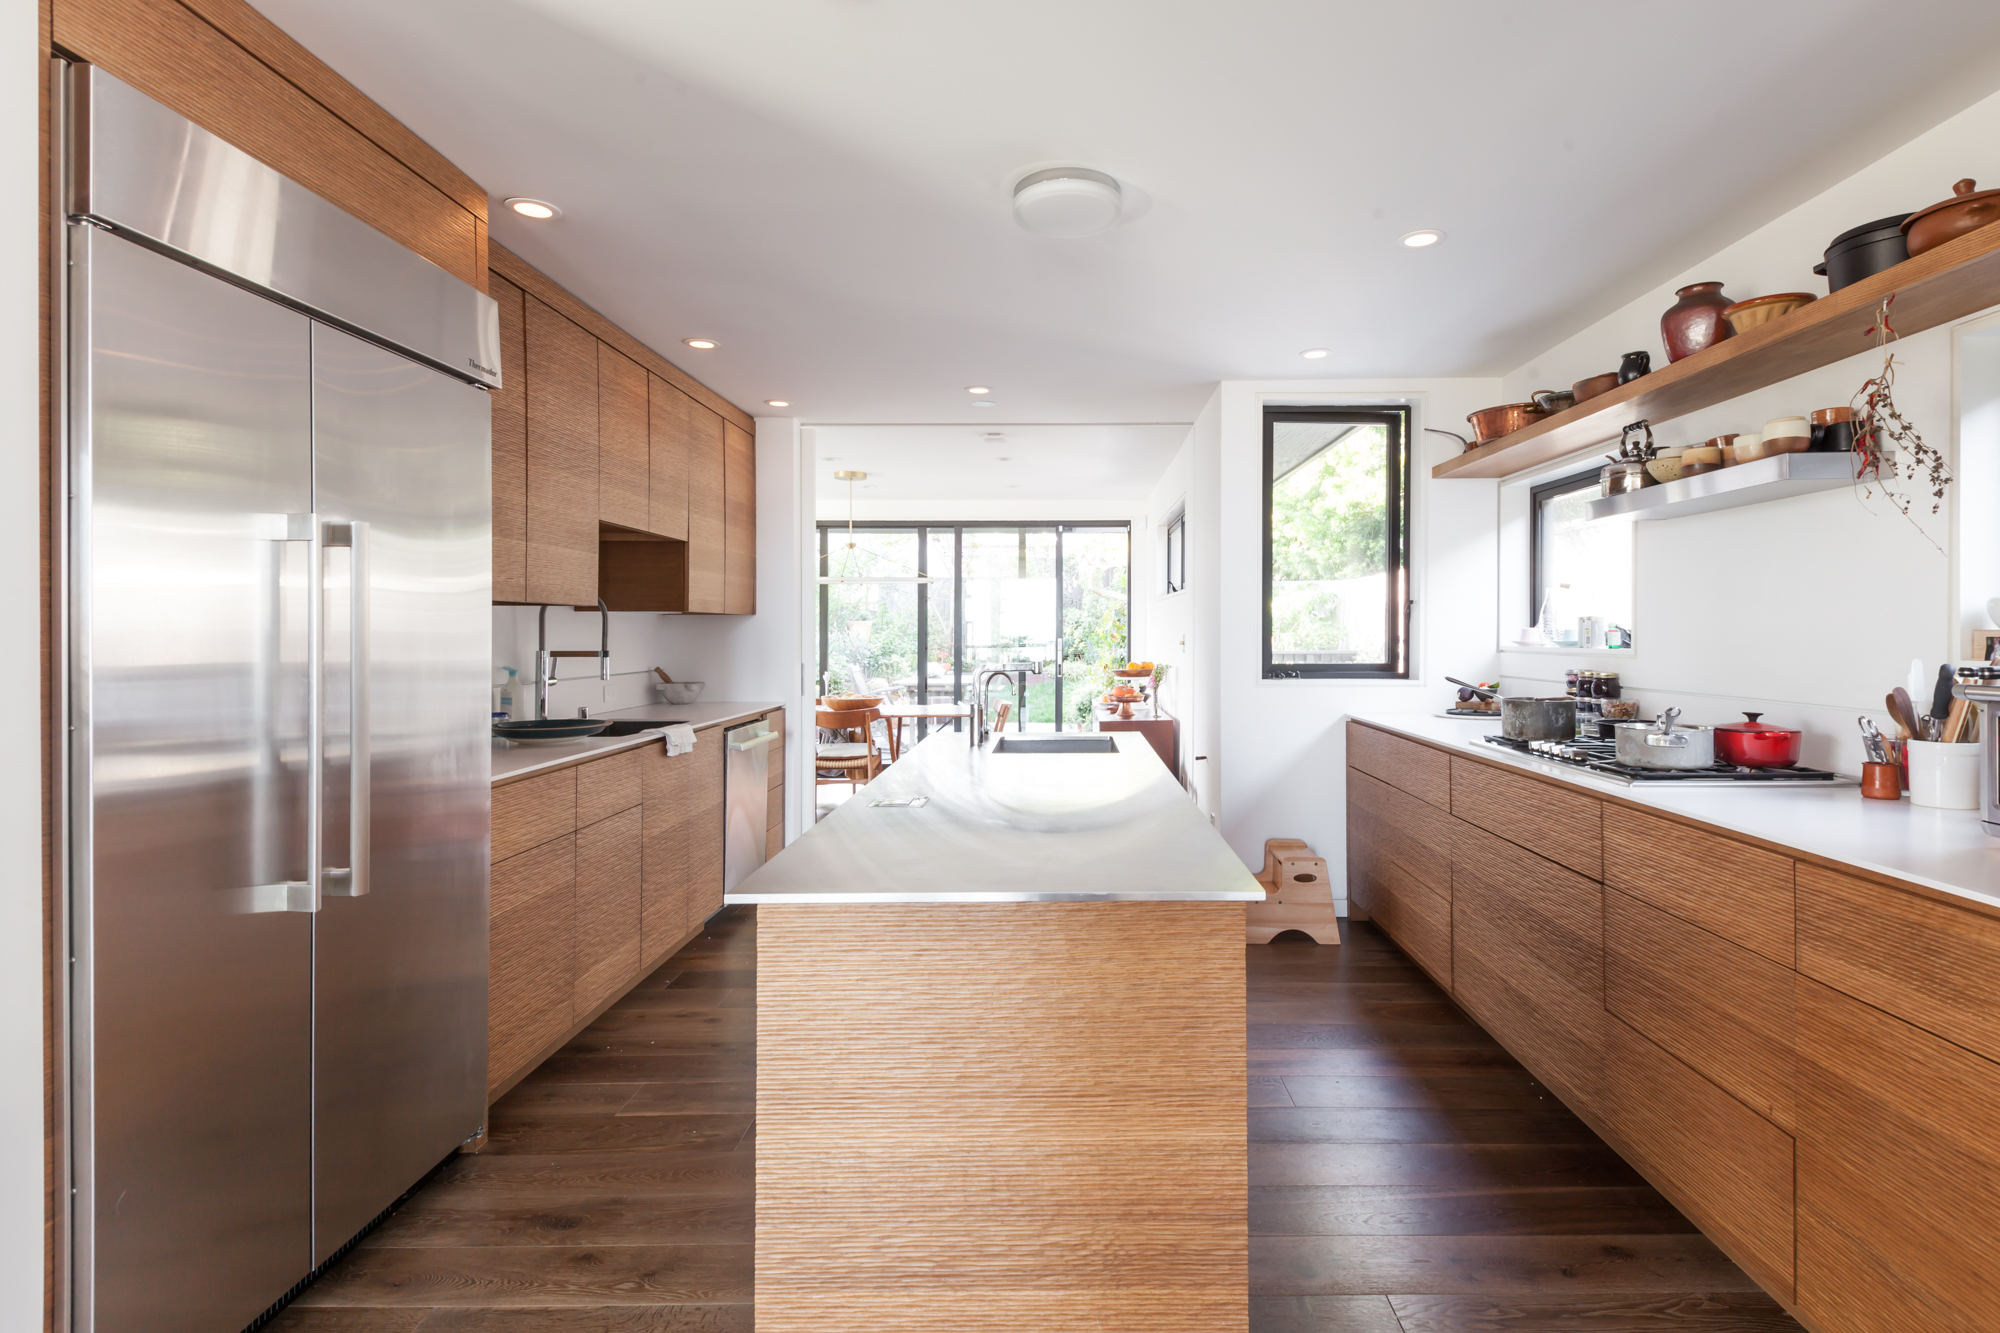 Look Inside The Airy Home Kitchen Of Tartine Bakery Owners Liz Prueitt And  Chad Robertson